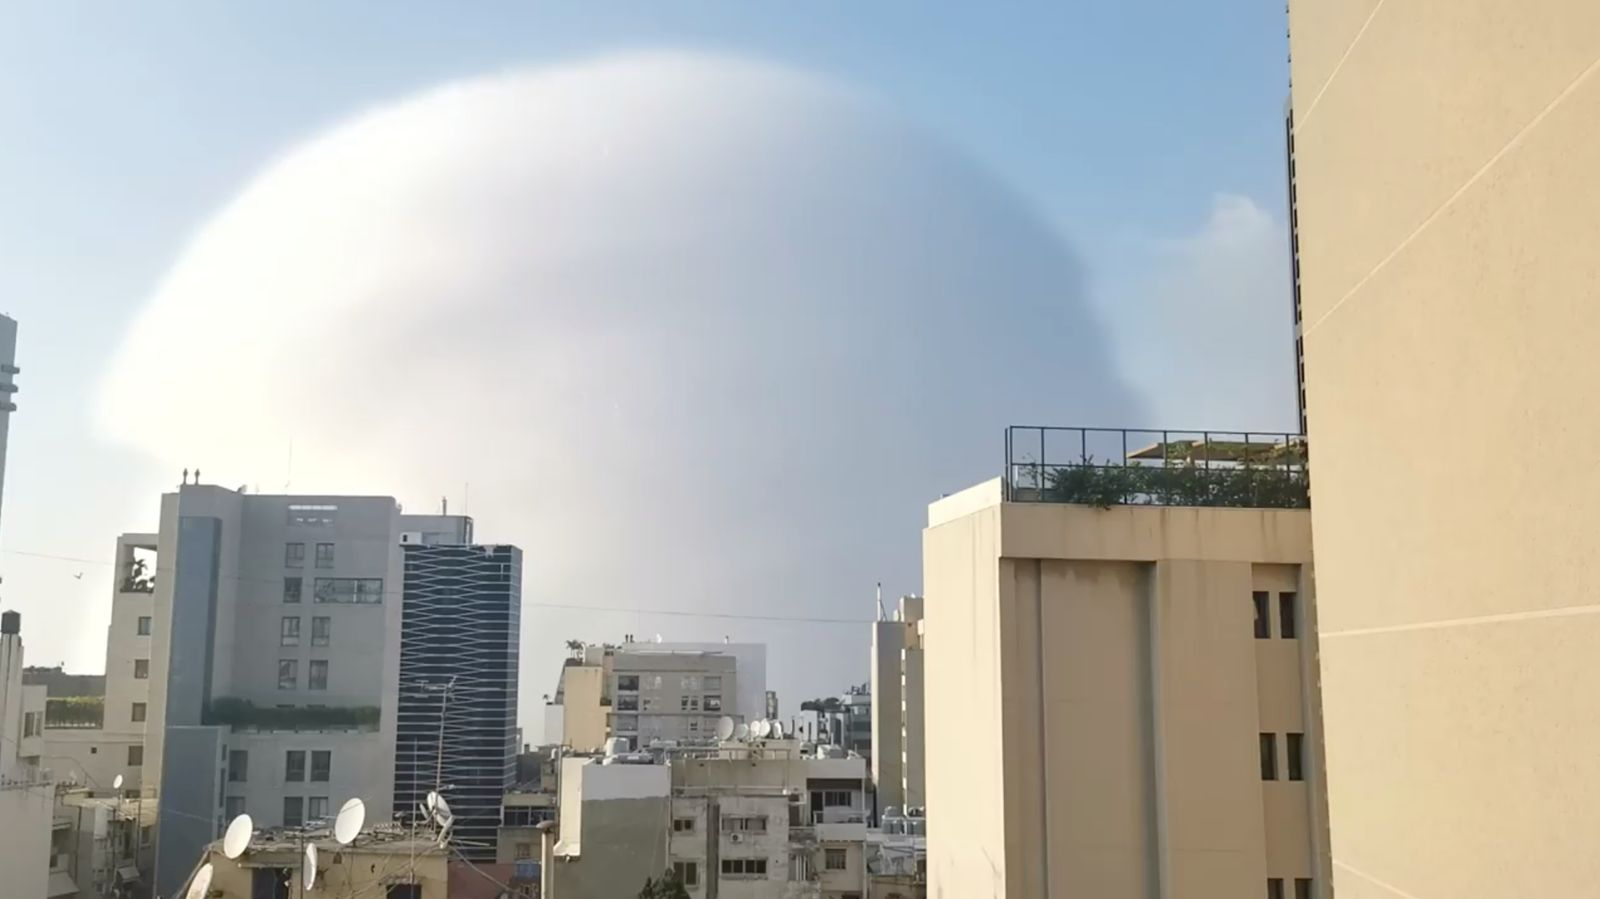 A shockwave is seen during an explosion in Beirut